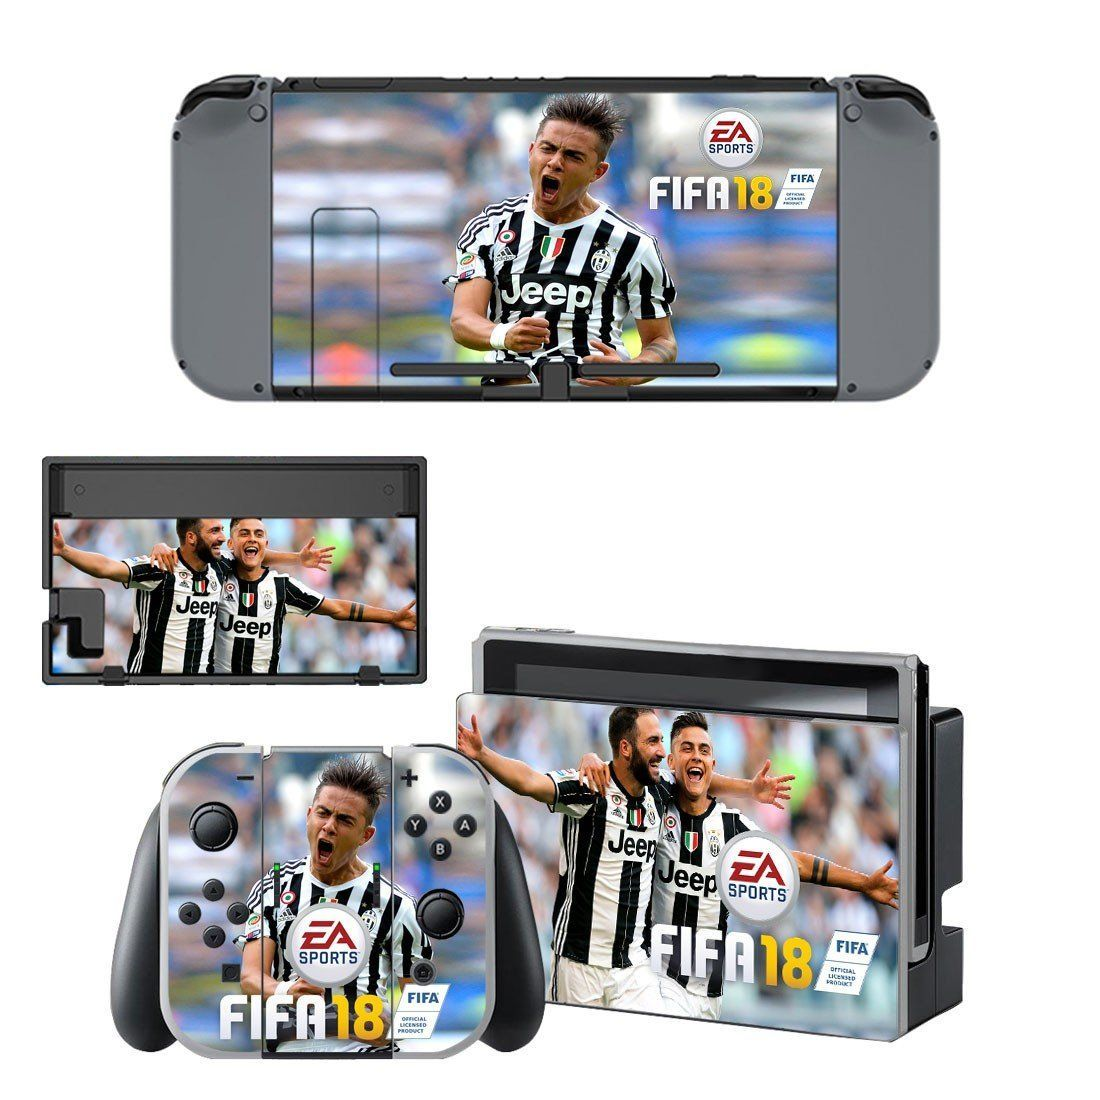 Fifa 18 Higuain And Dybala Juventus Vinyl Decal For Nintendo Switch Console Sticker Skin